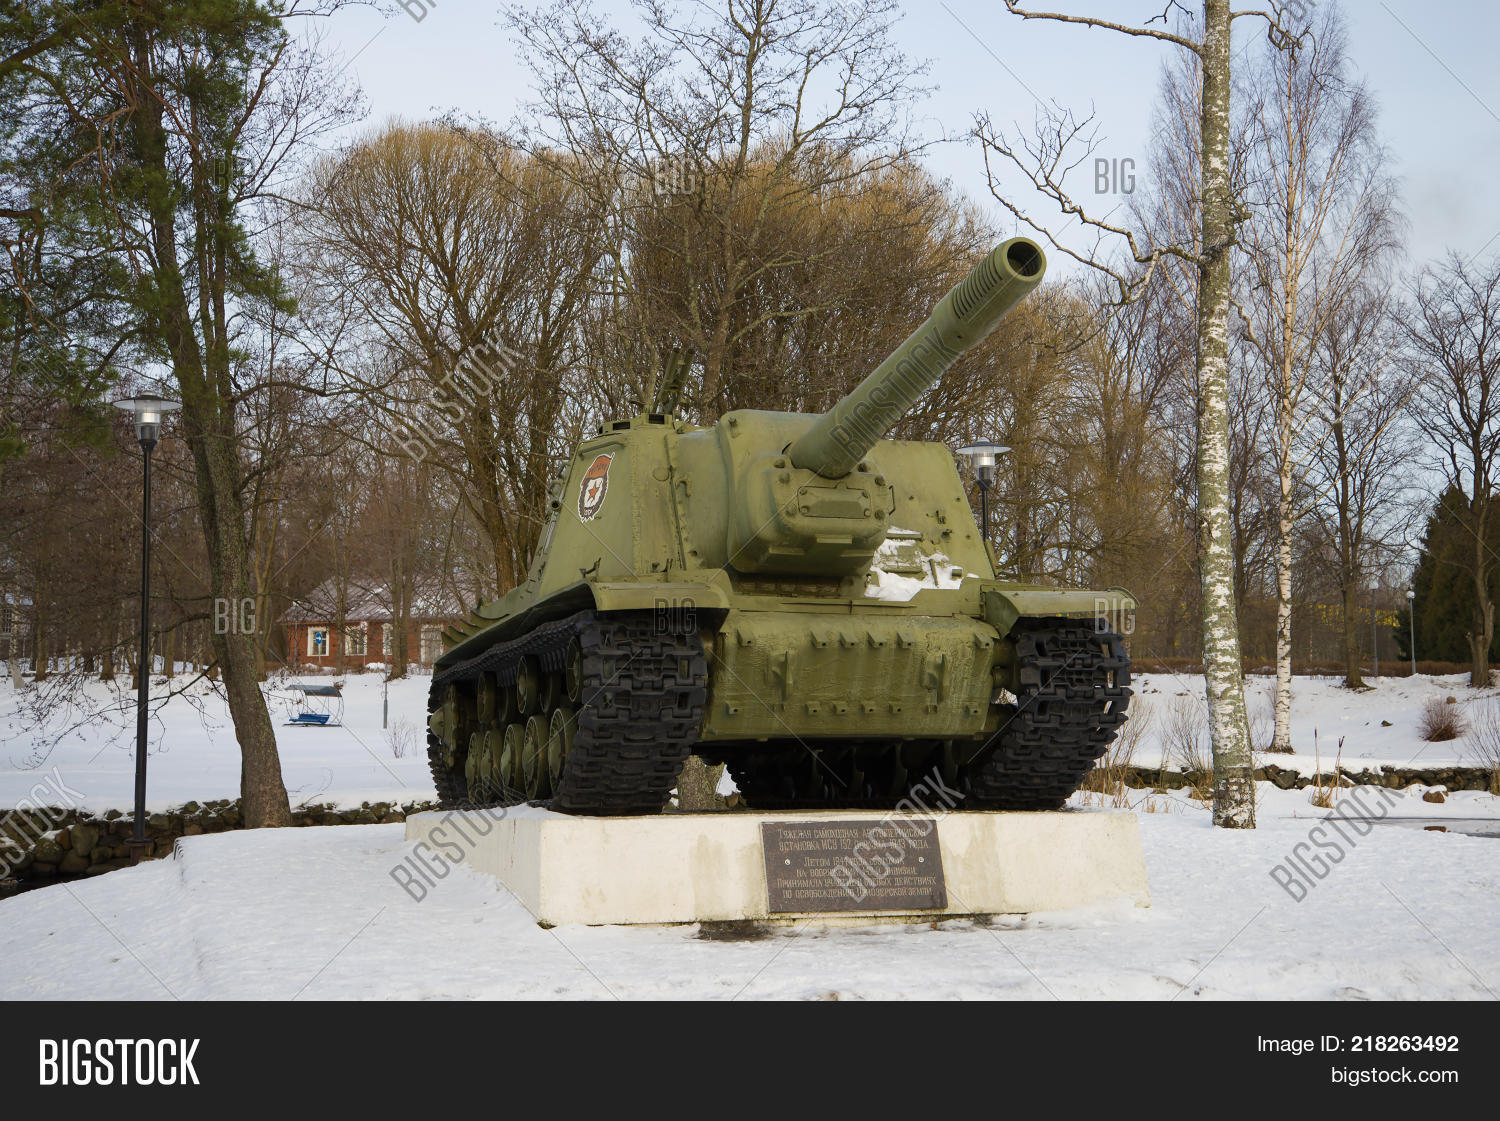 Desertion during the Great Patriotic War